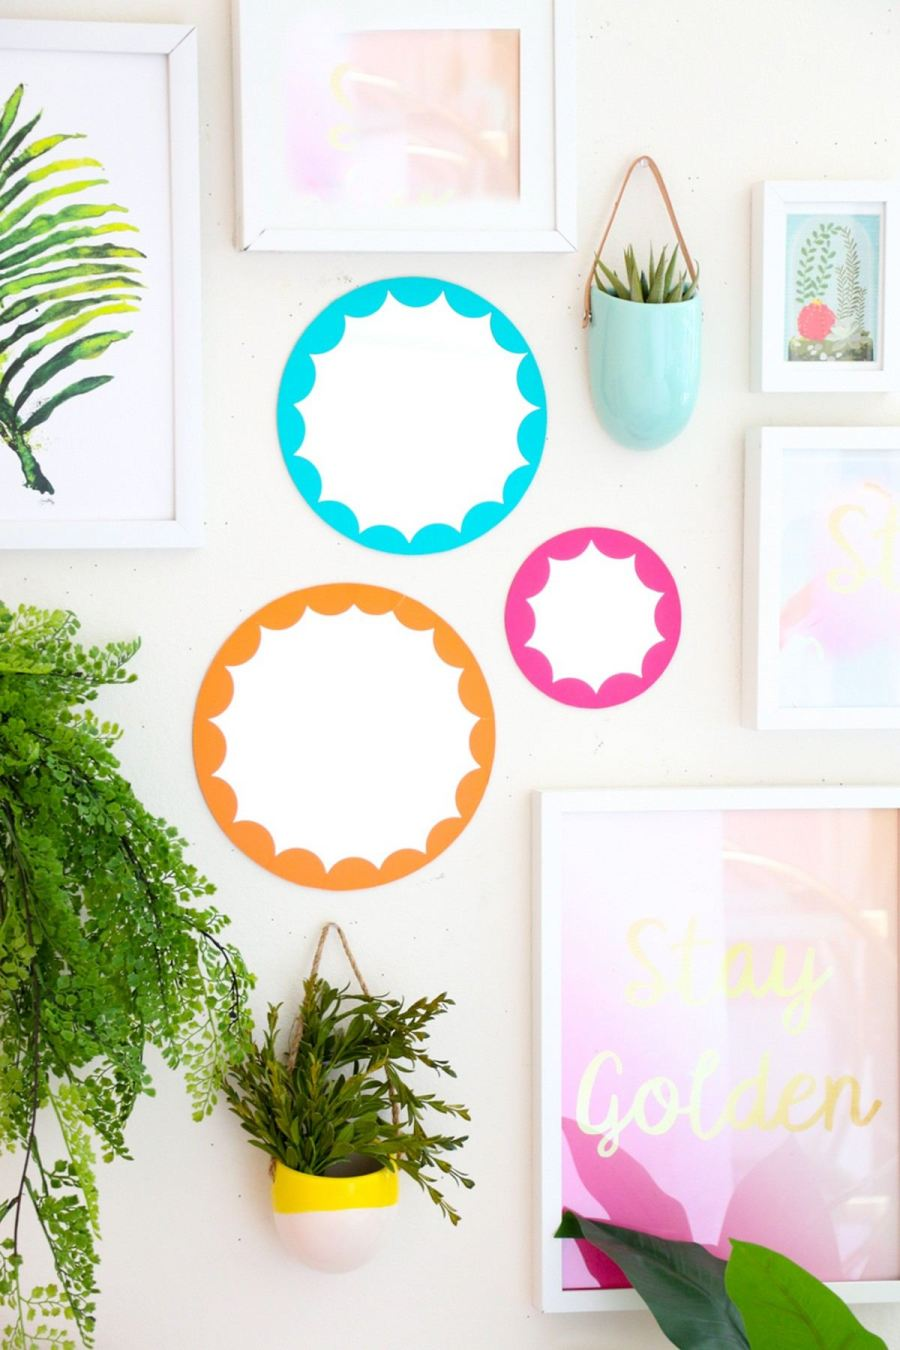 The first thing when we get up in the morning is look at the mirror right? Give your mirror a unique look with these incredible DIY mirror frames ideas.